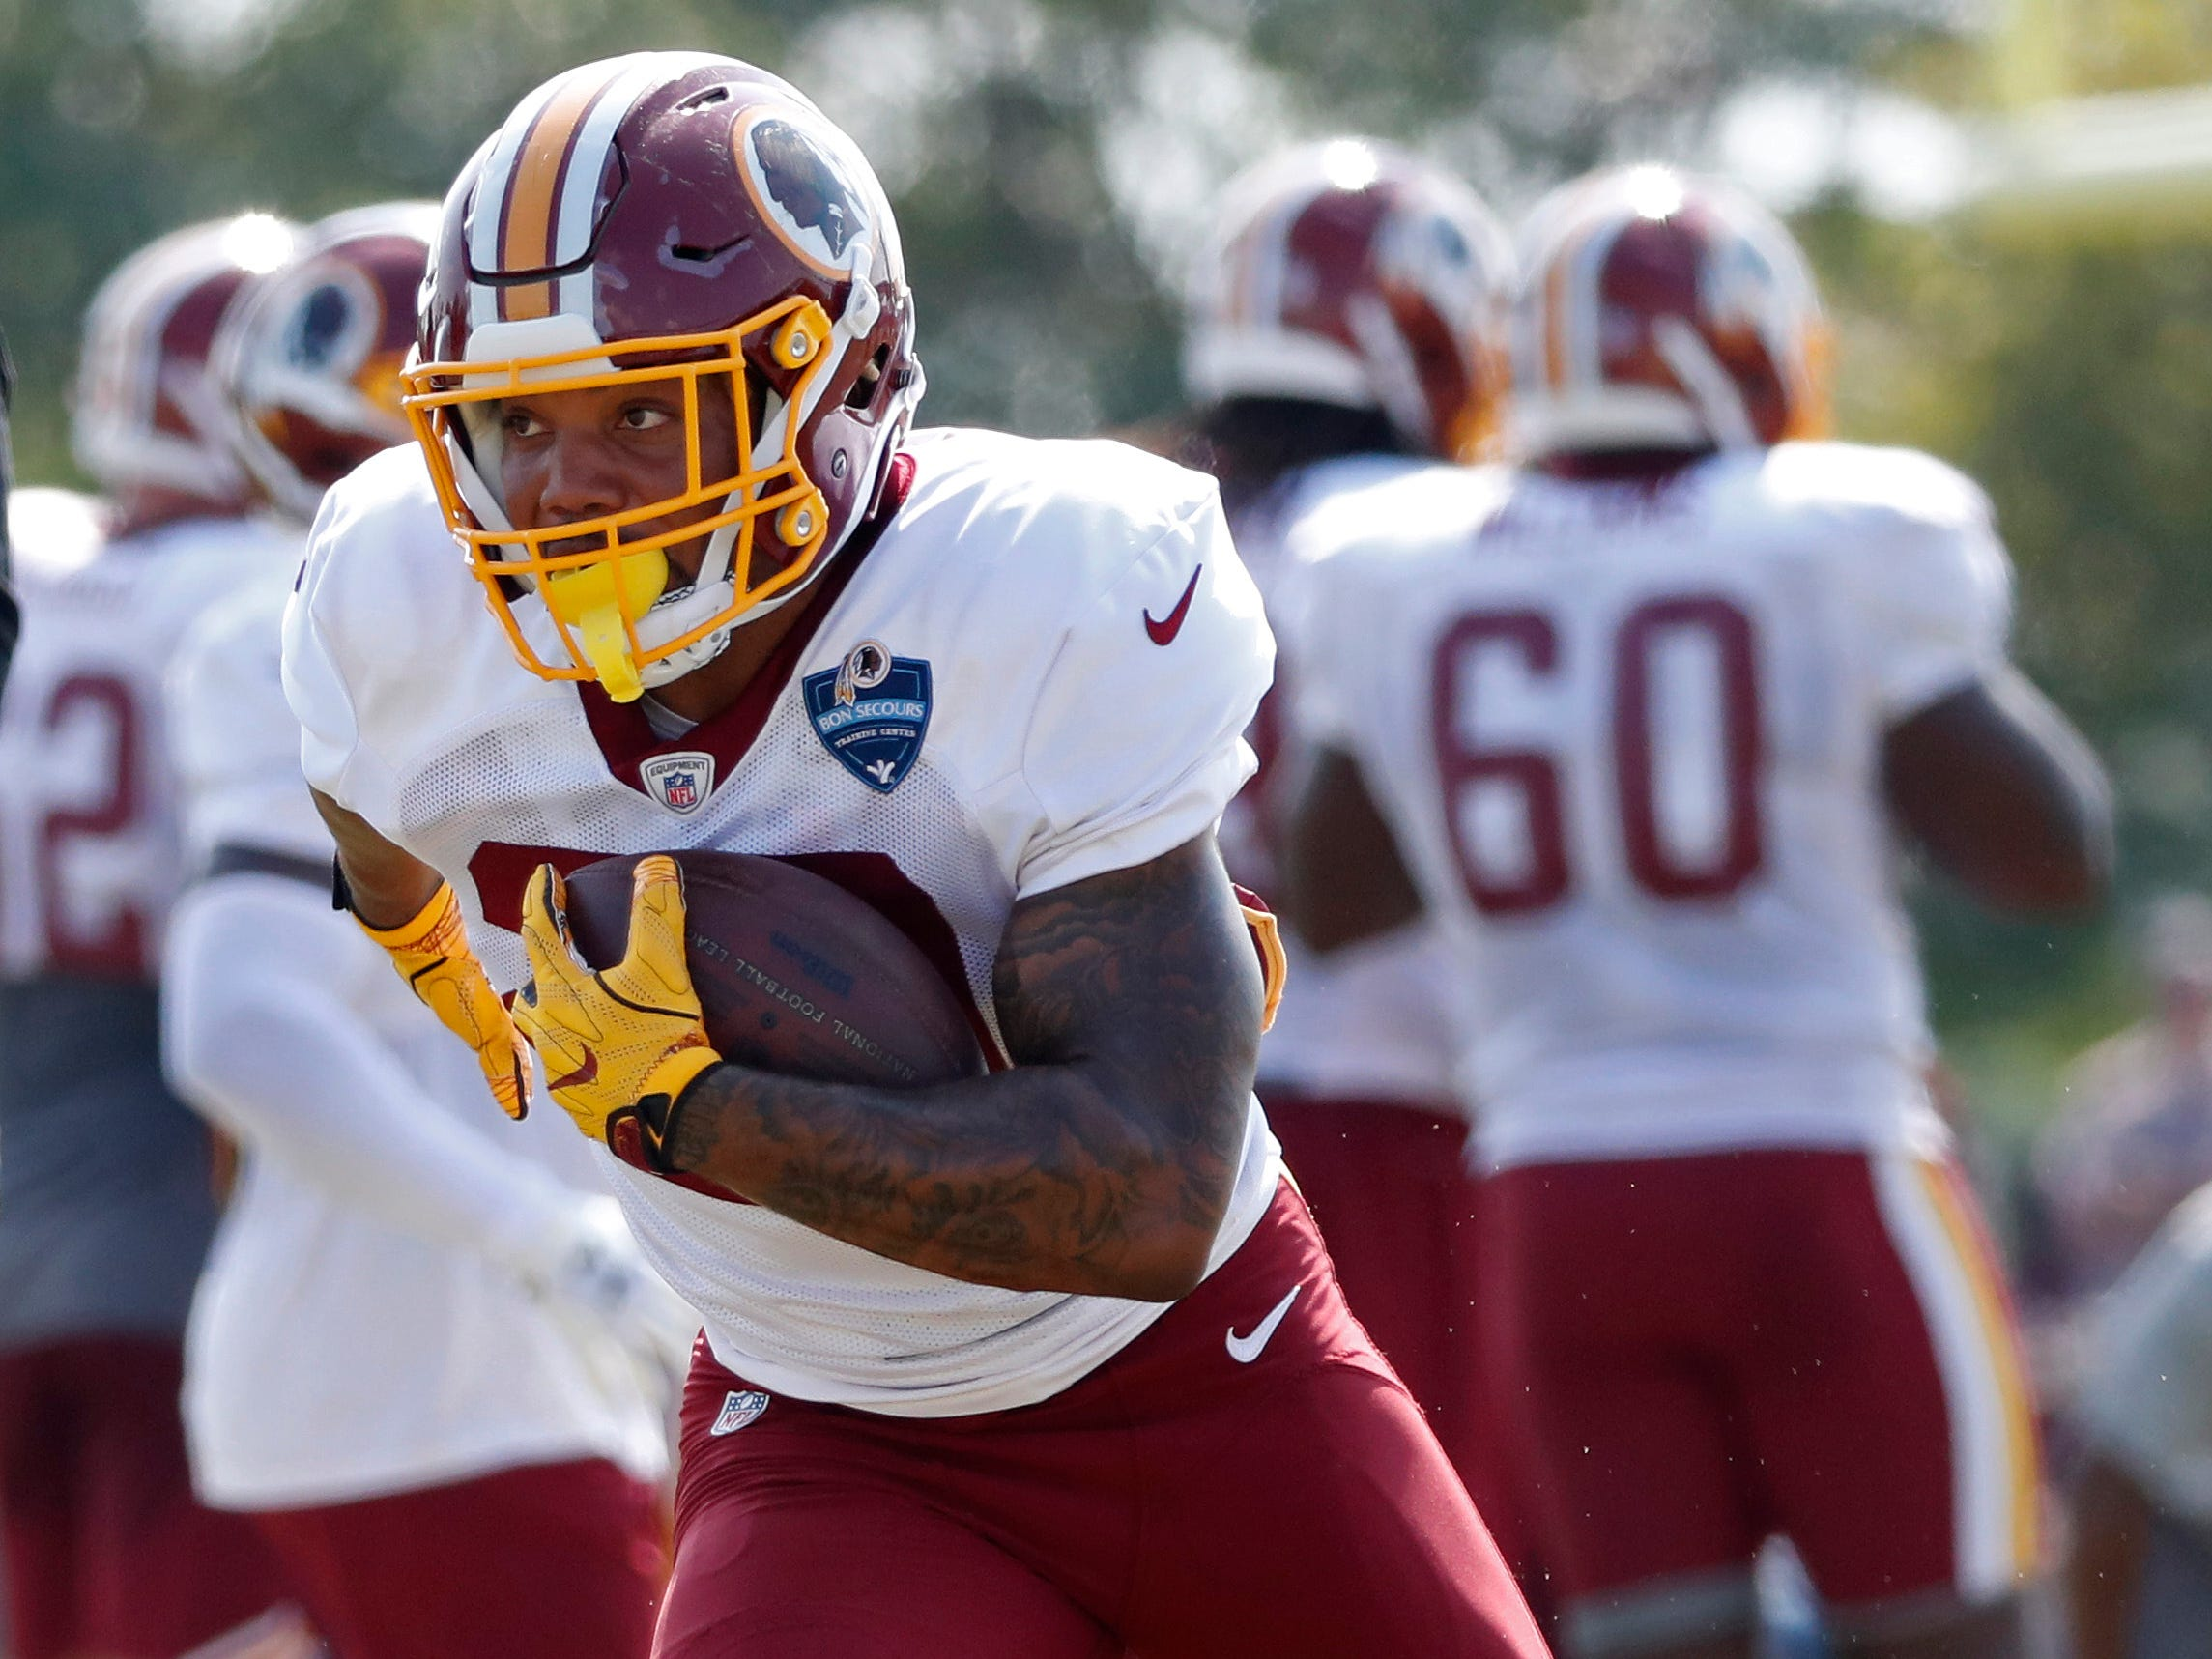 Derrius Guice, RB, Washington Redskins (torn ACL, out for season)